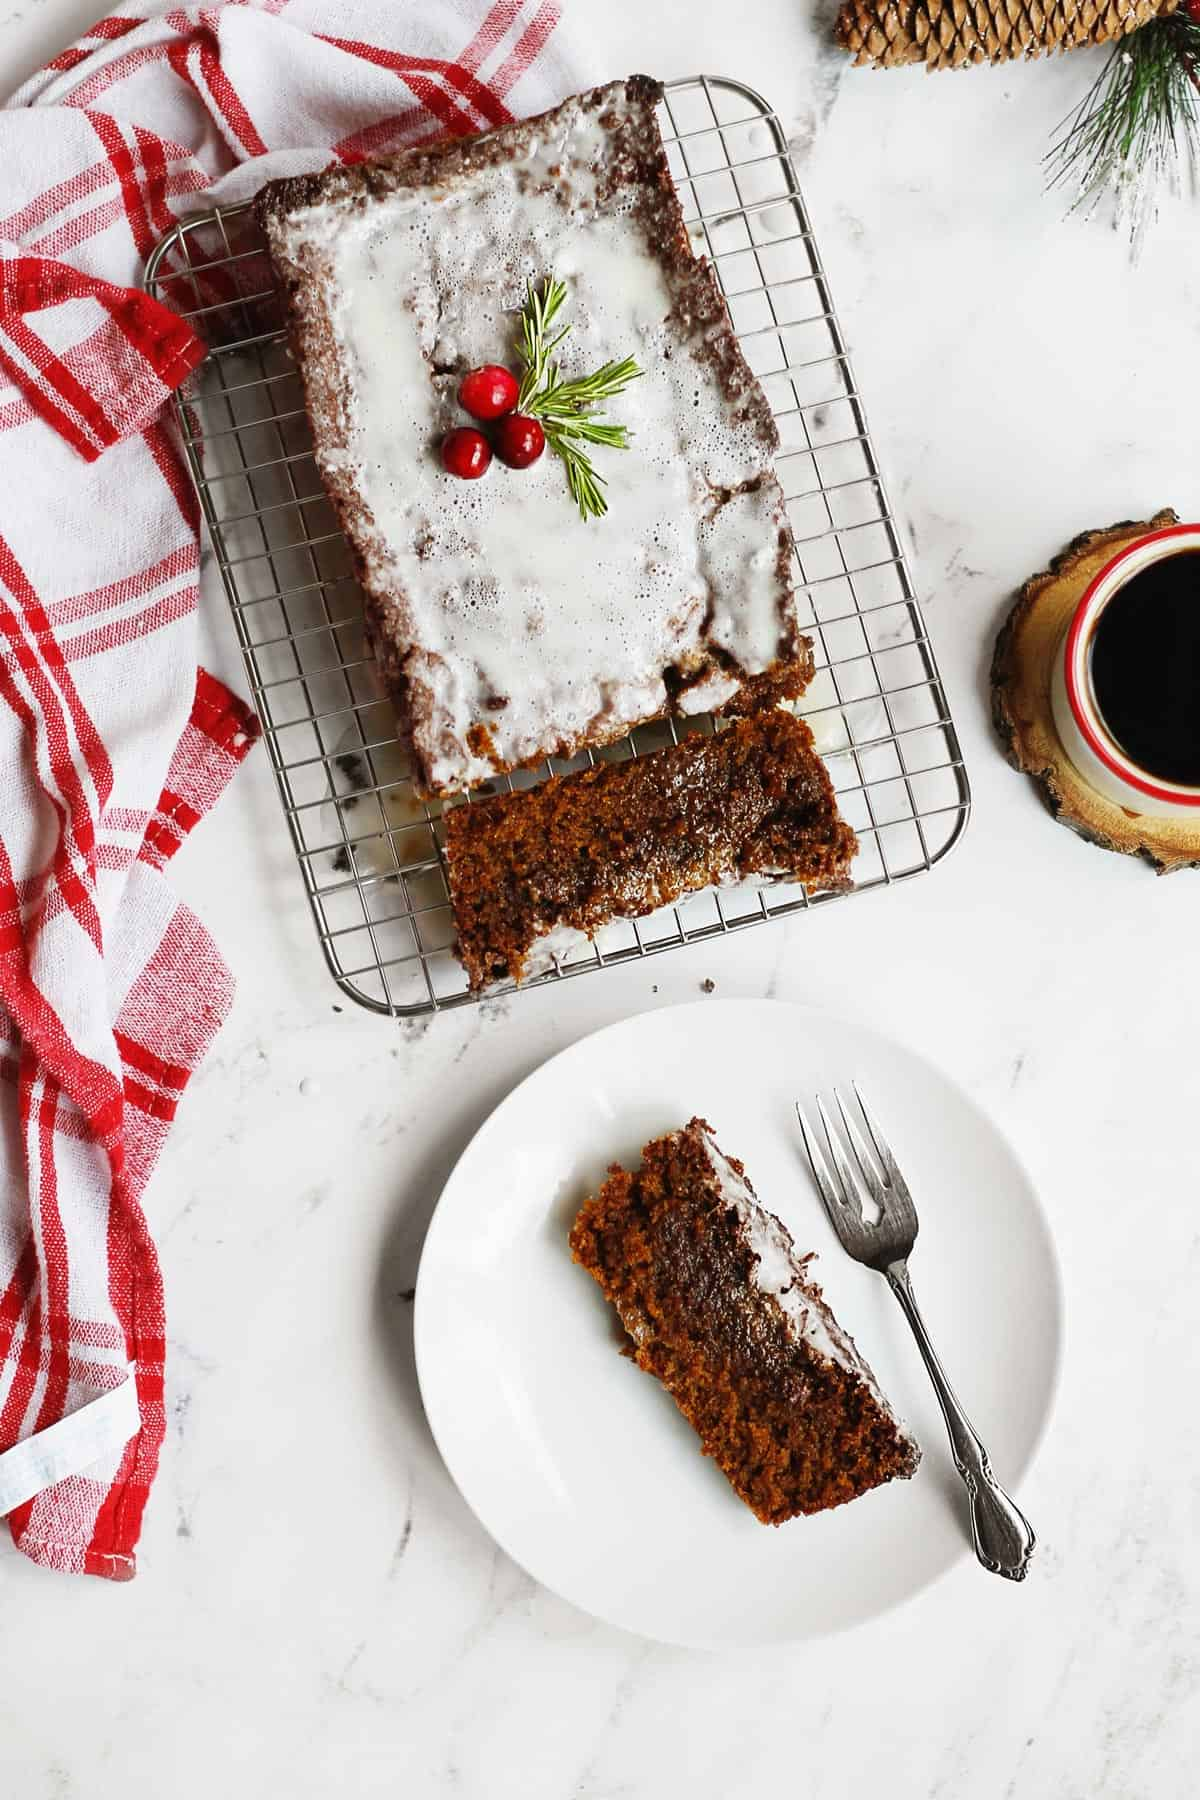 Gingerbread loaf with a slice